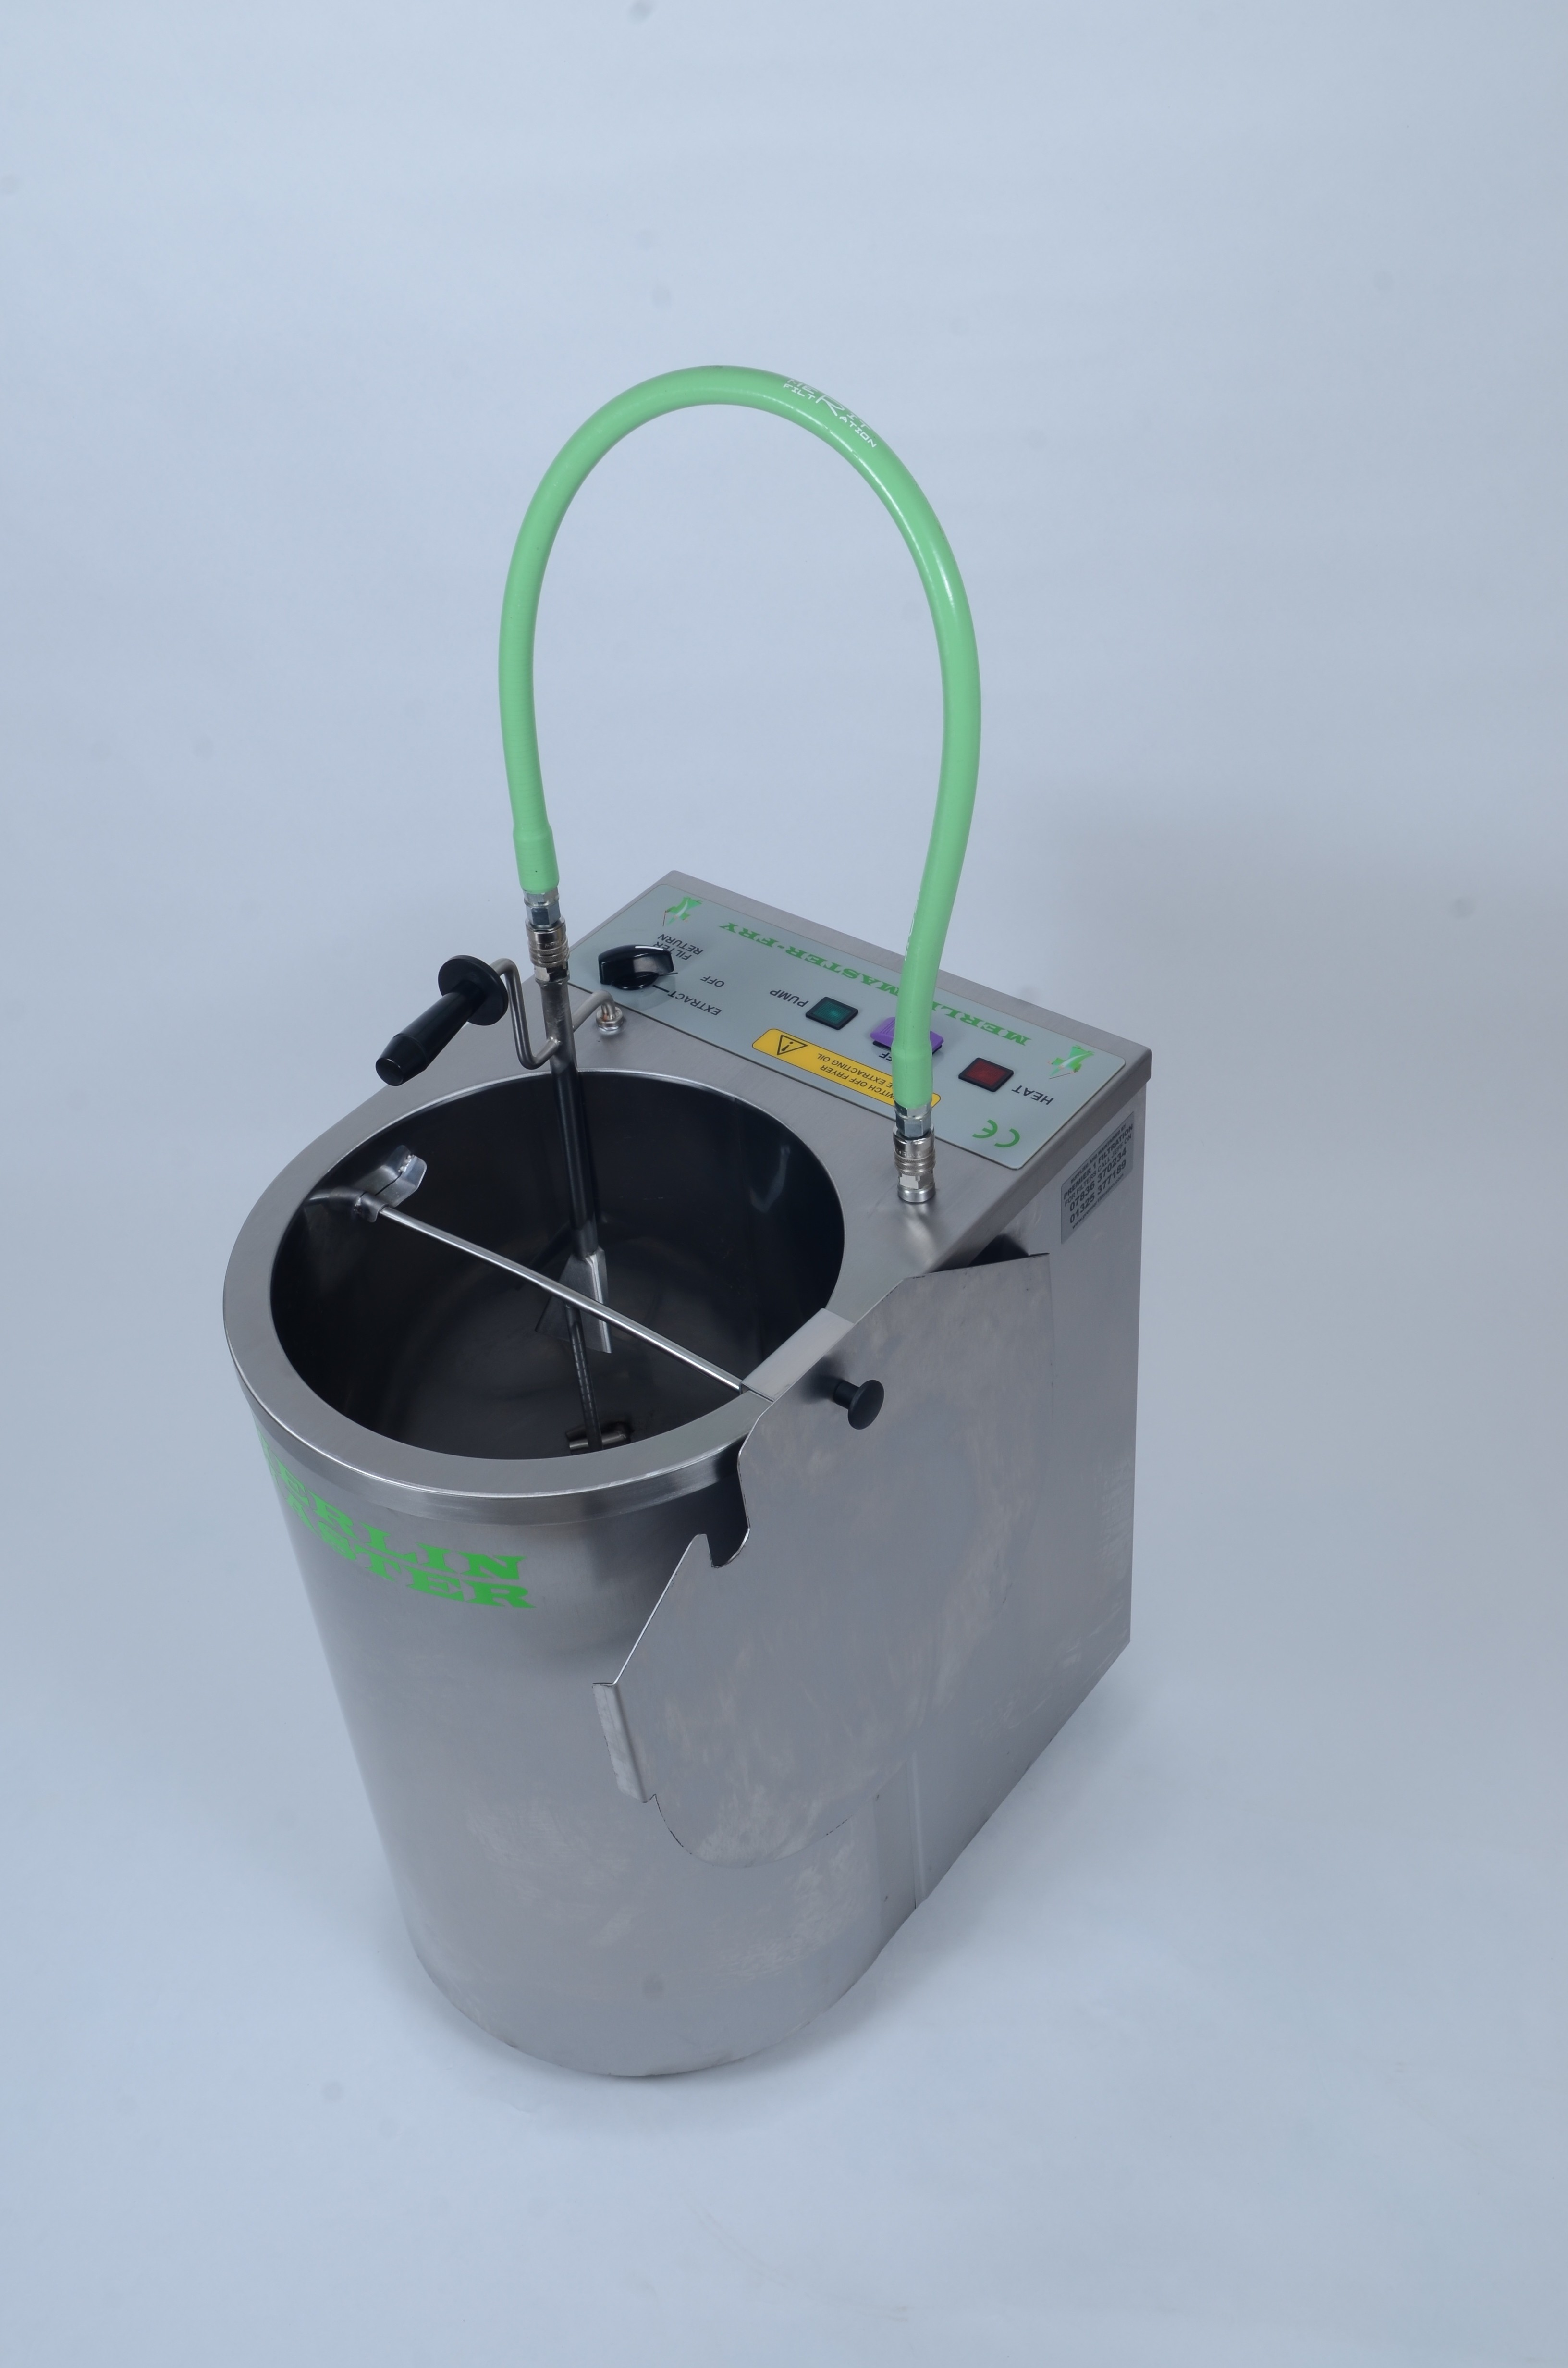 The Merlin Master Fry Oil/Fat Filter Machine